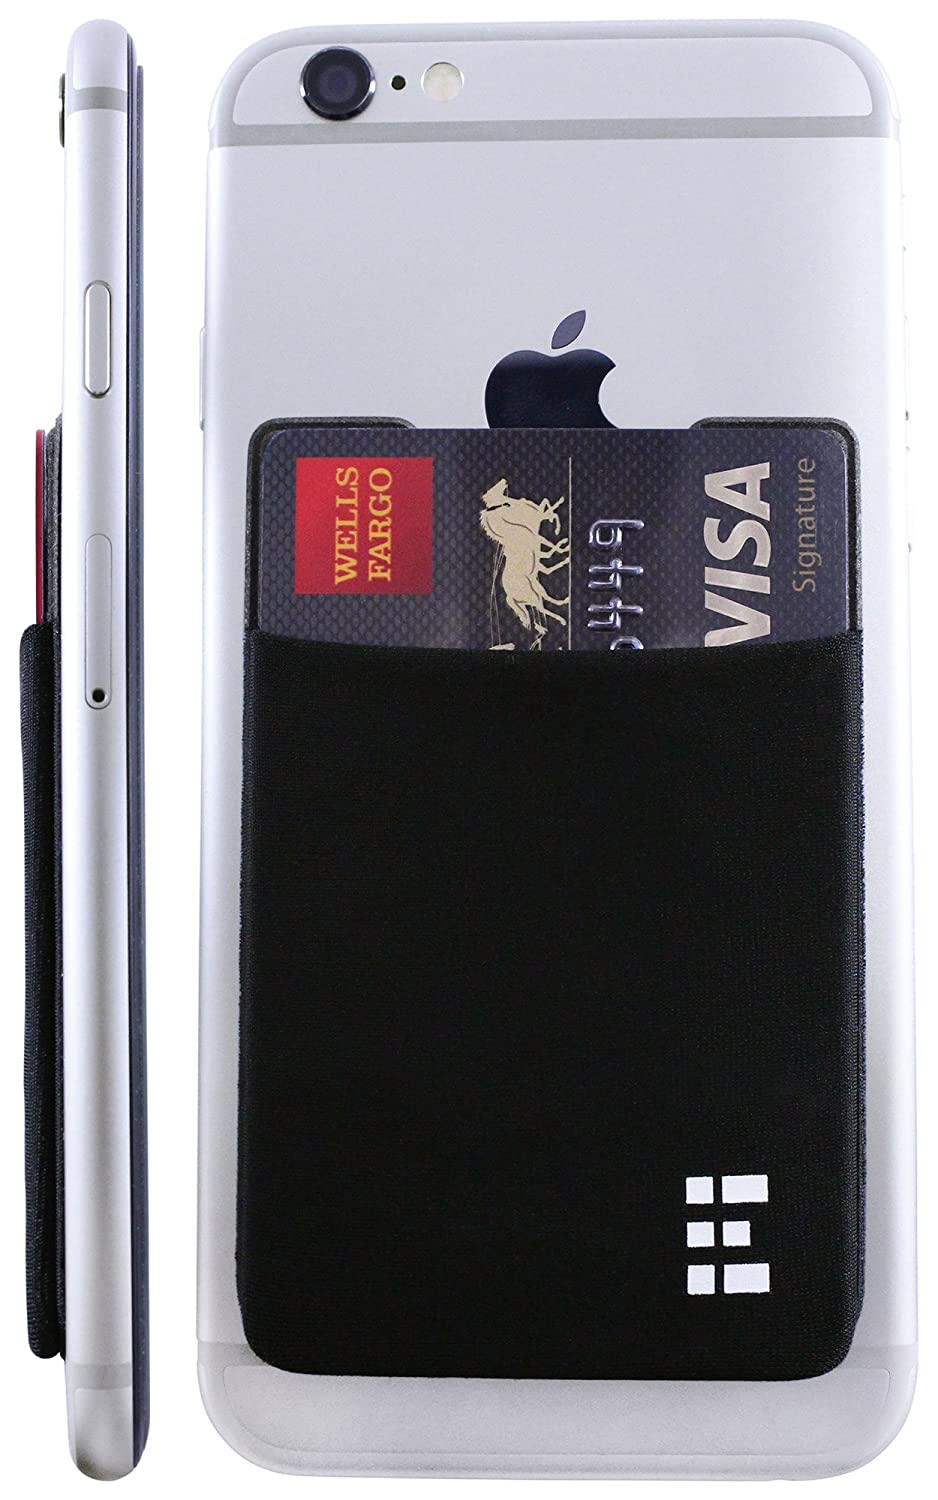 Cell Phone Card Holder >> Amazon Com Zero Grid Cell Phone Credit Card Holder Stick On Wallet